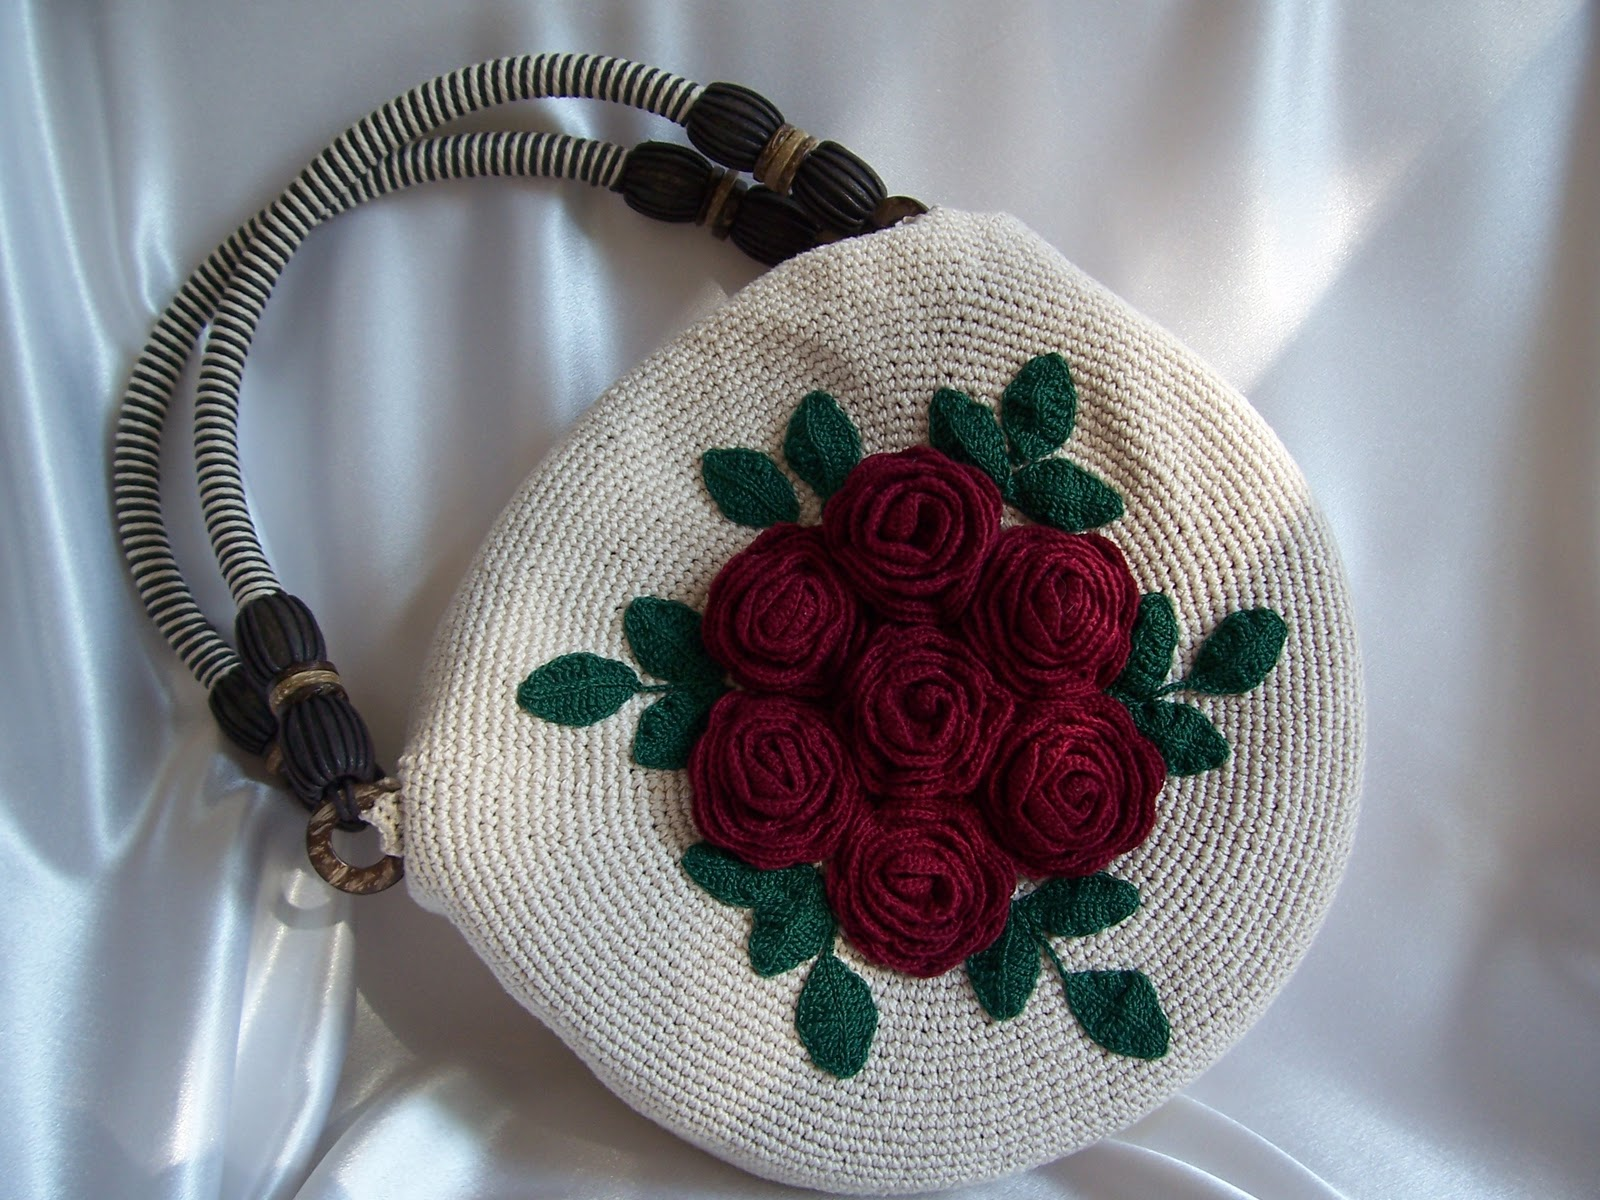 ... Crochet: How to make a beautiful purse with flower decoration. Free